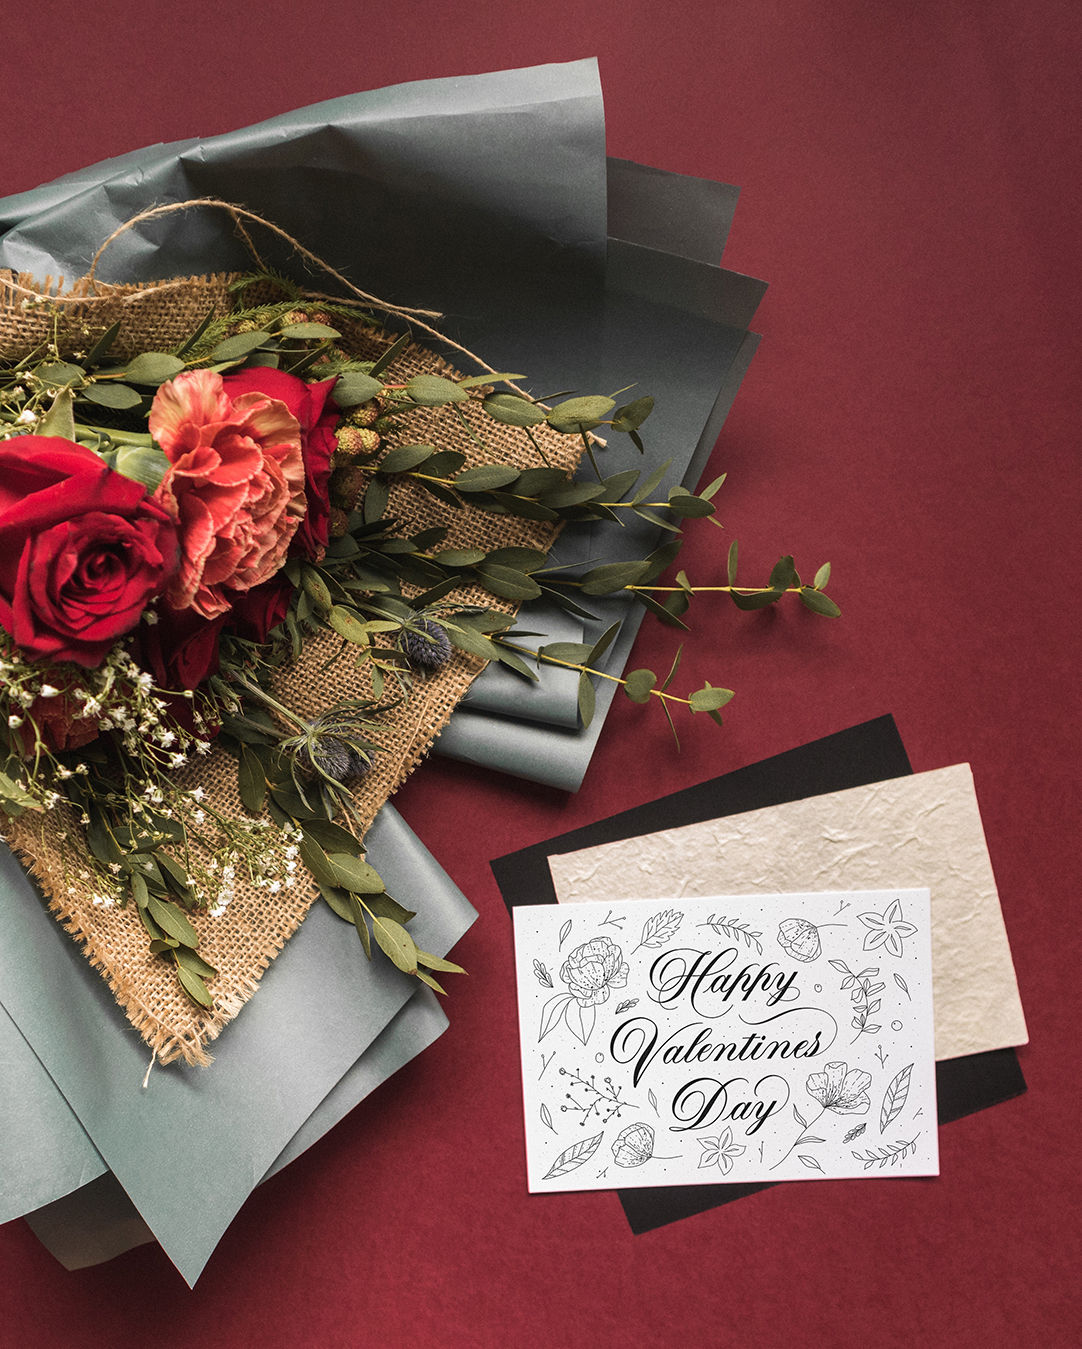 Blush Florals SG Photography Styled Shoot for Valentine's Day.jpg